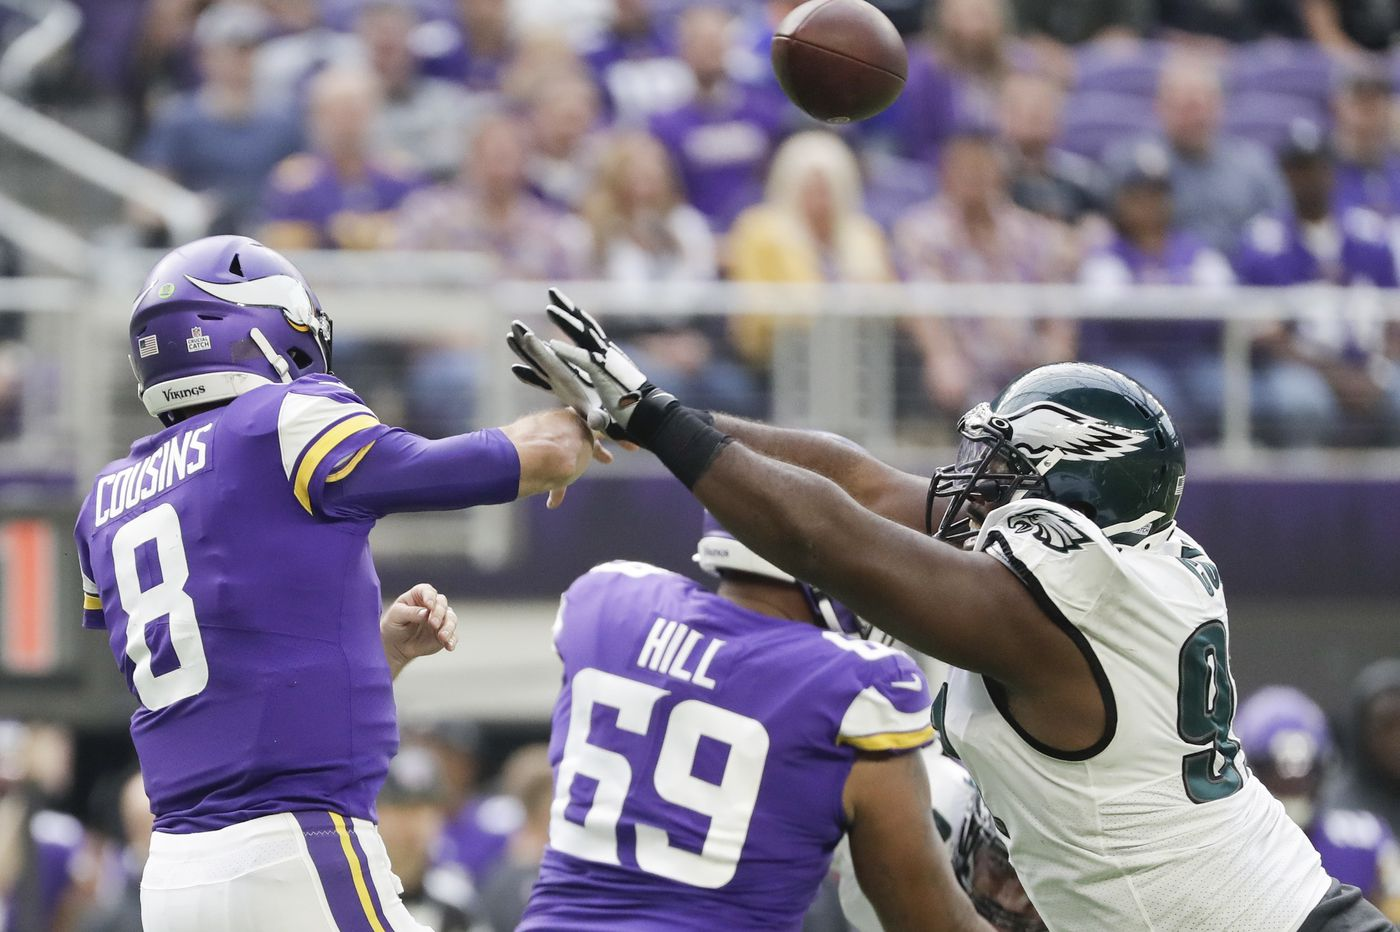 Eagles' Zach Brown backs off trash talk after Vikings' Kirk Cousins shreds Birds defense